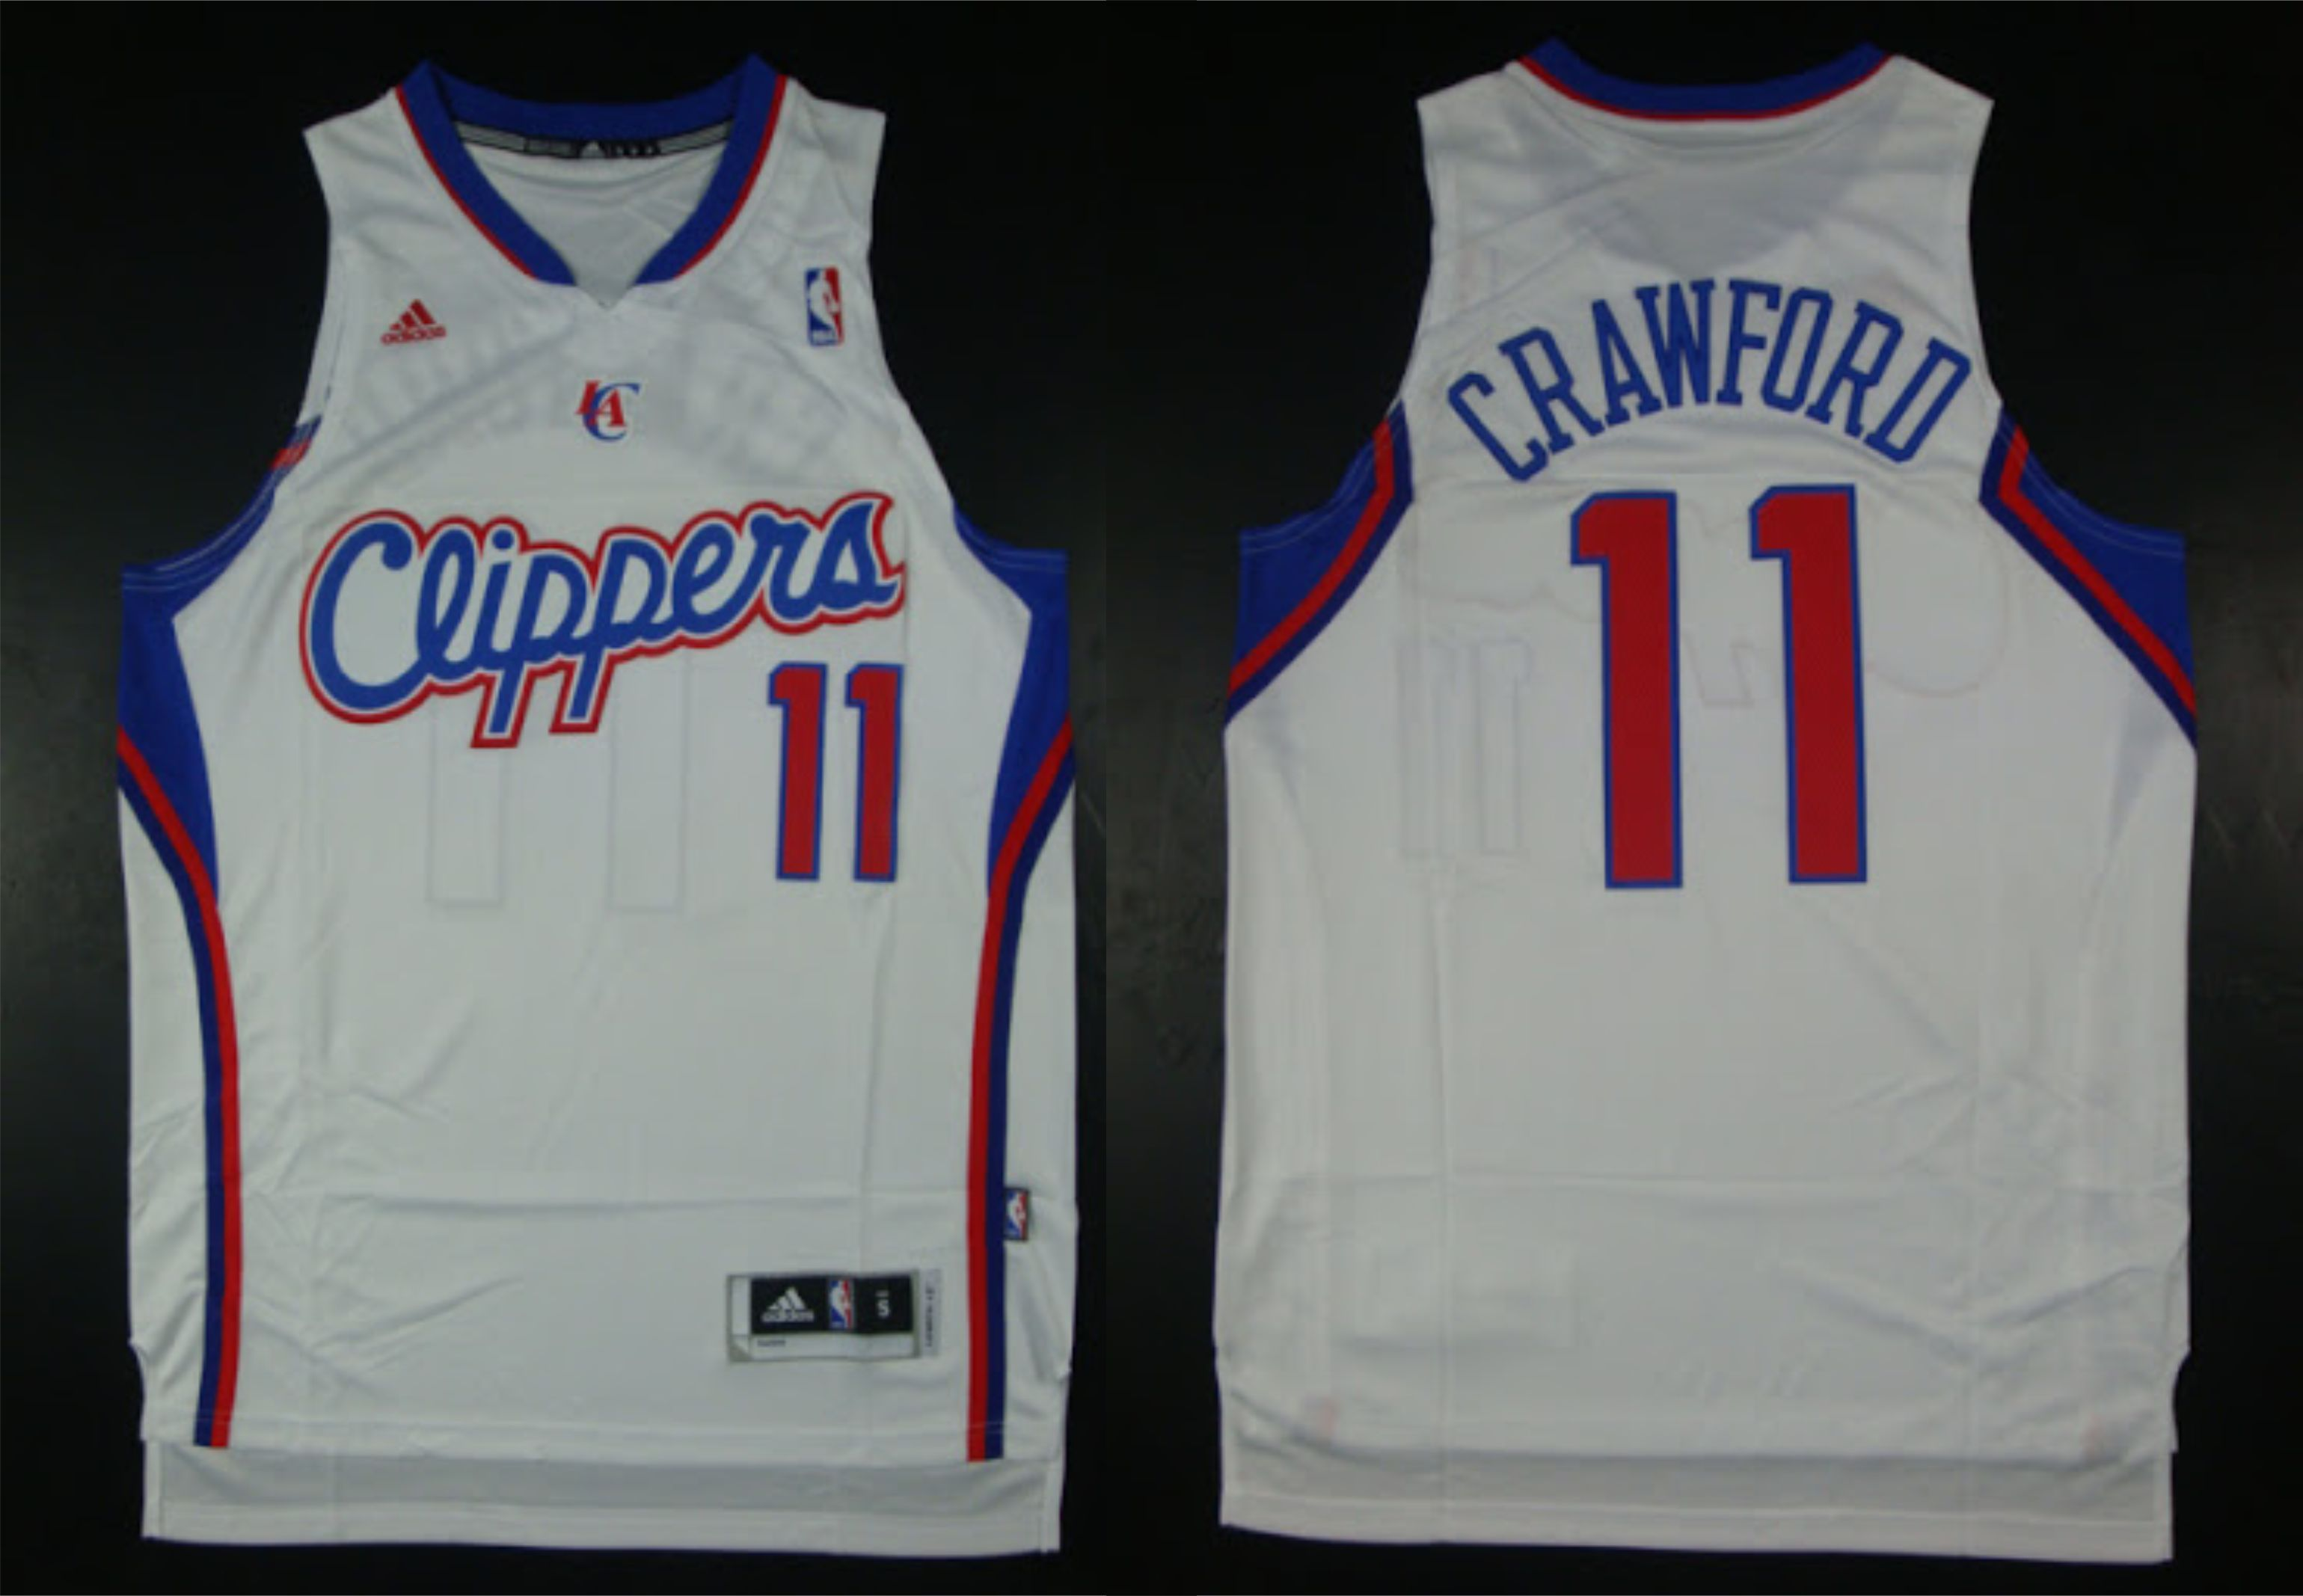 e7bf8a2e Jamal Crawford | NBA Swingman | Los Angeles Clippers, White jersey ...